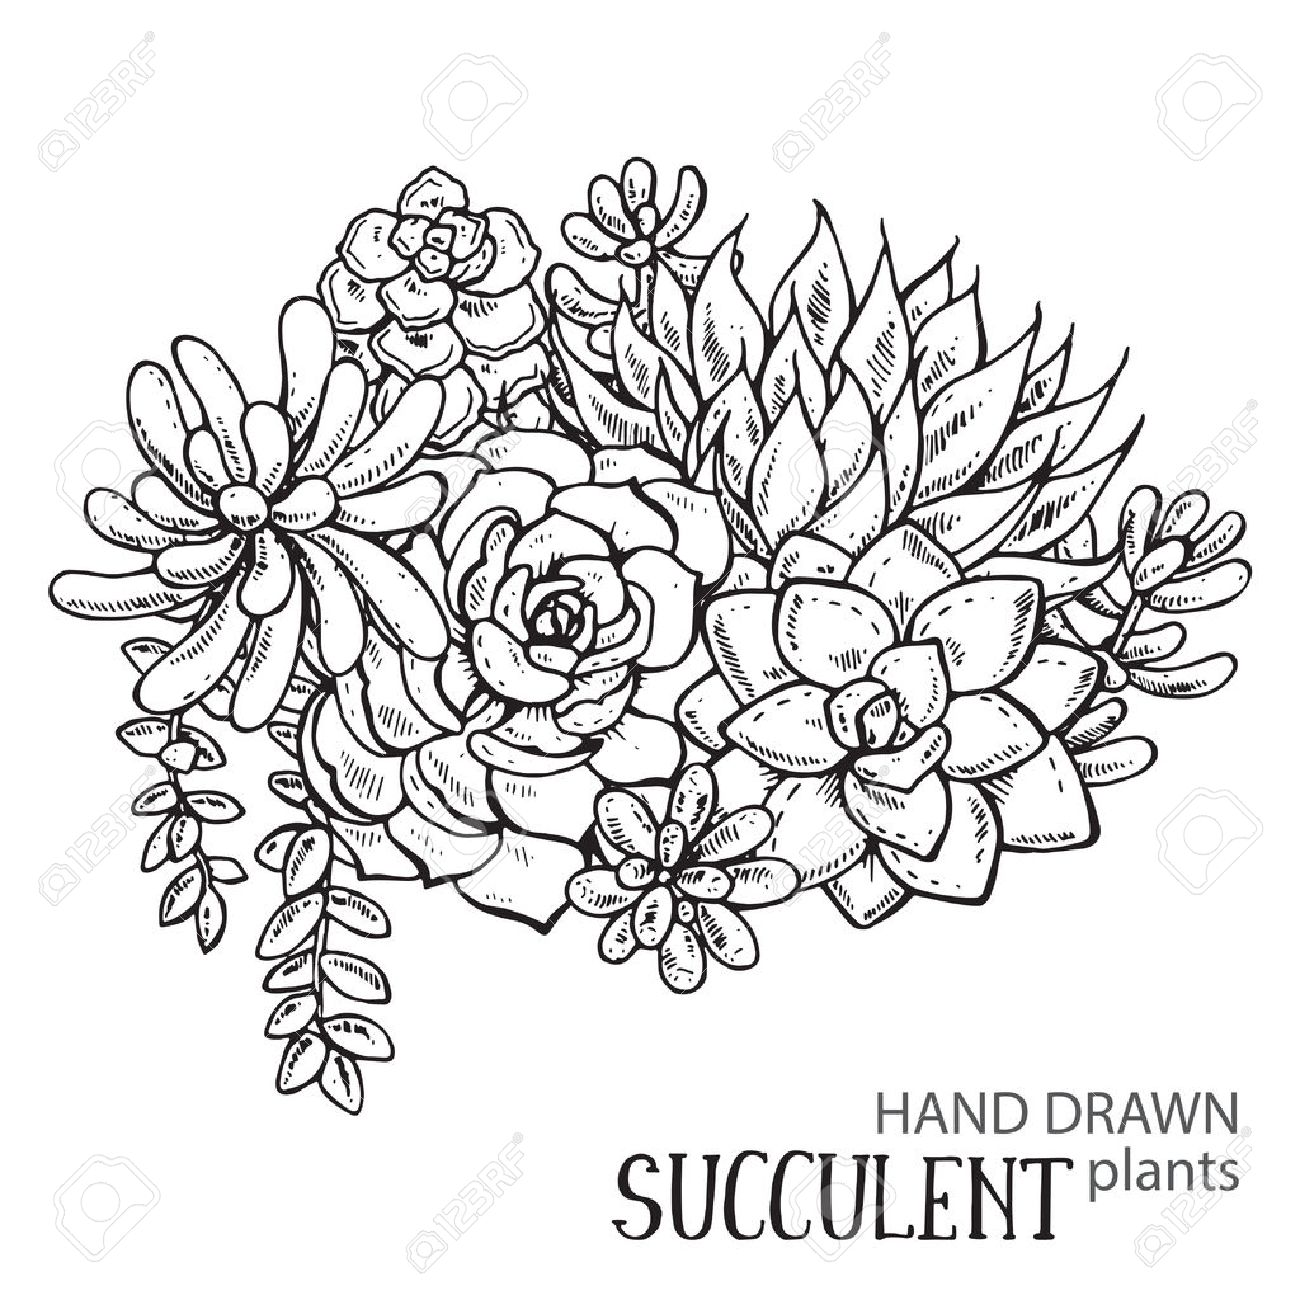 Vector Illustration Of Hand Drawn Succulent Plants Black And